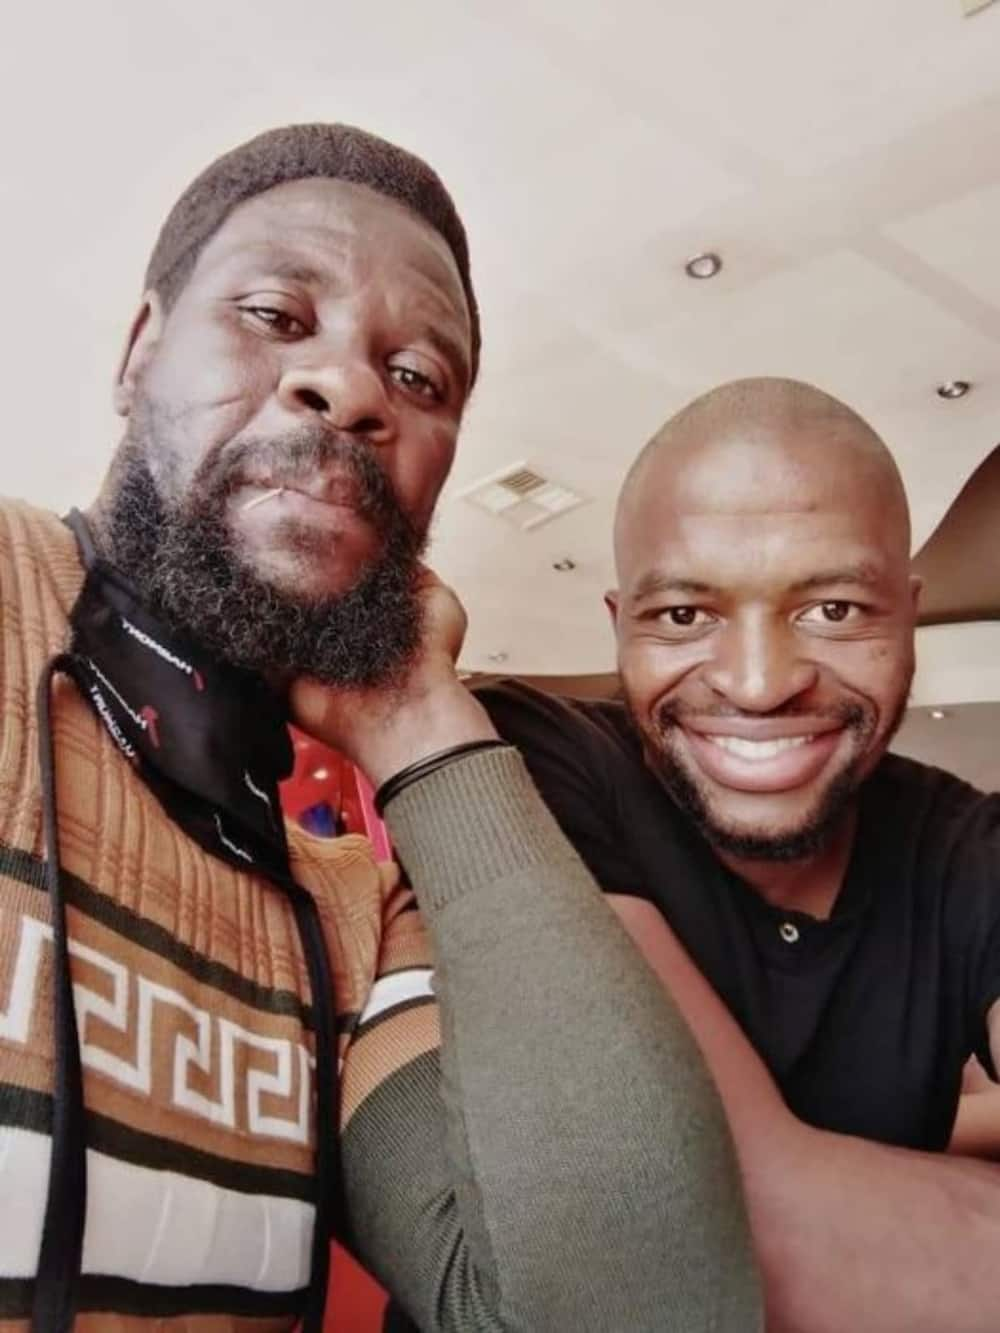 Thabani Nhlengethwa praised his stepdad for making him the man he is today. Photo credit: Facebook/Thabani Nhlengethwa